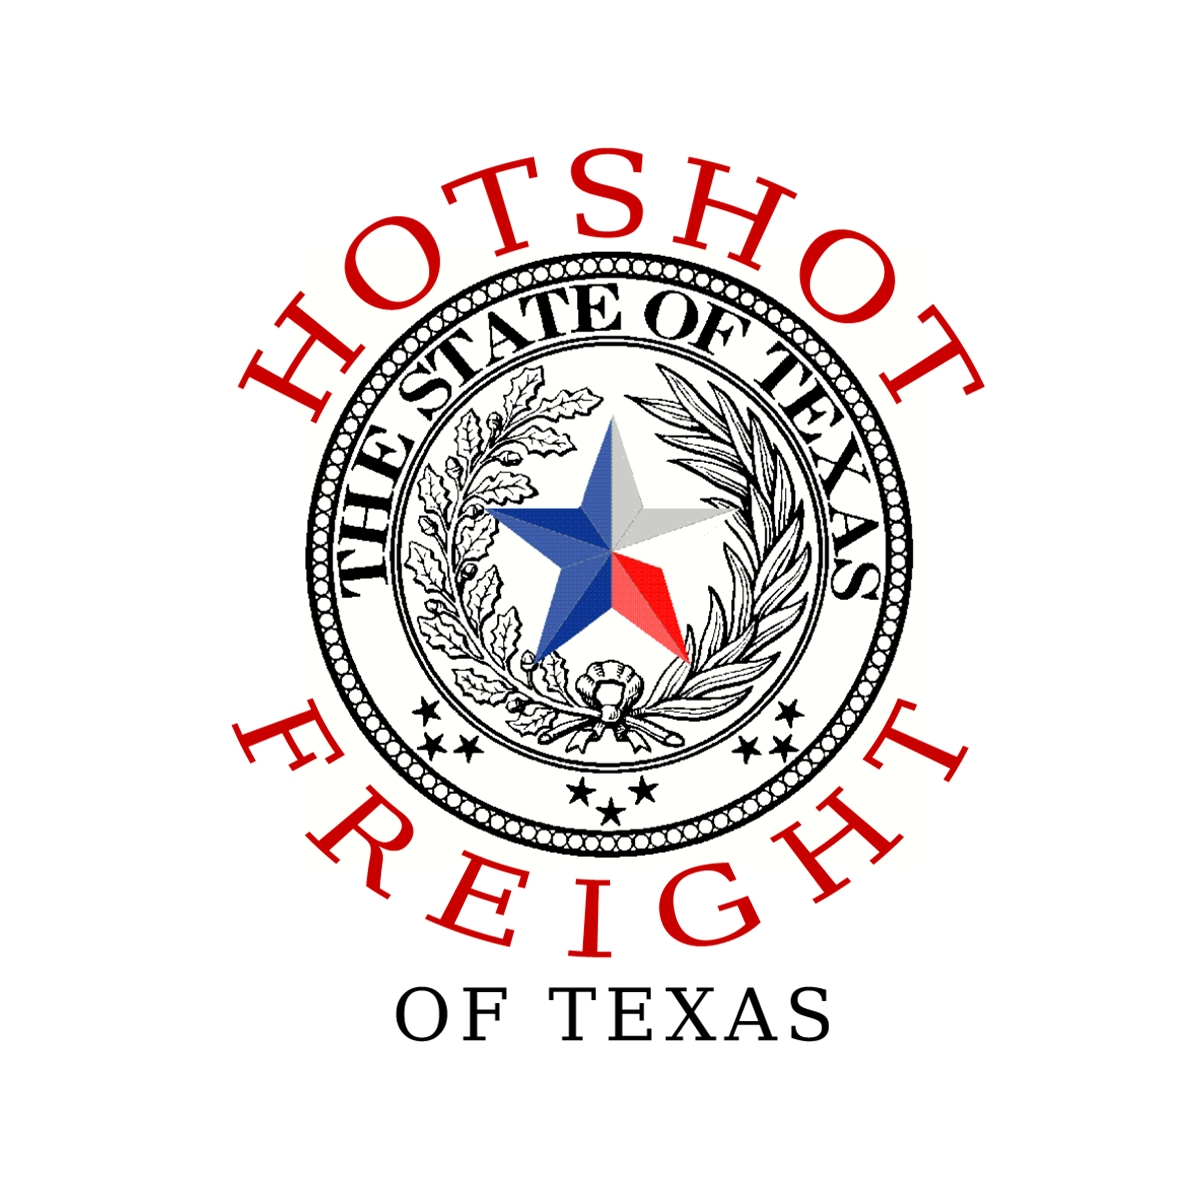 Hotshot Freight of Texas